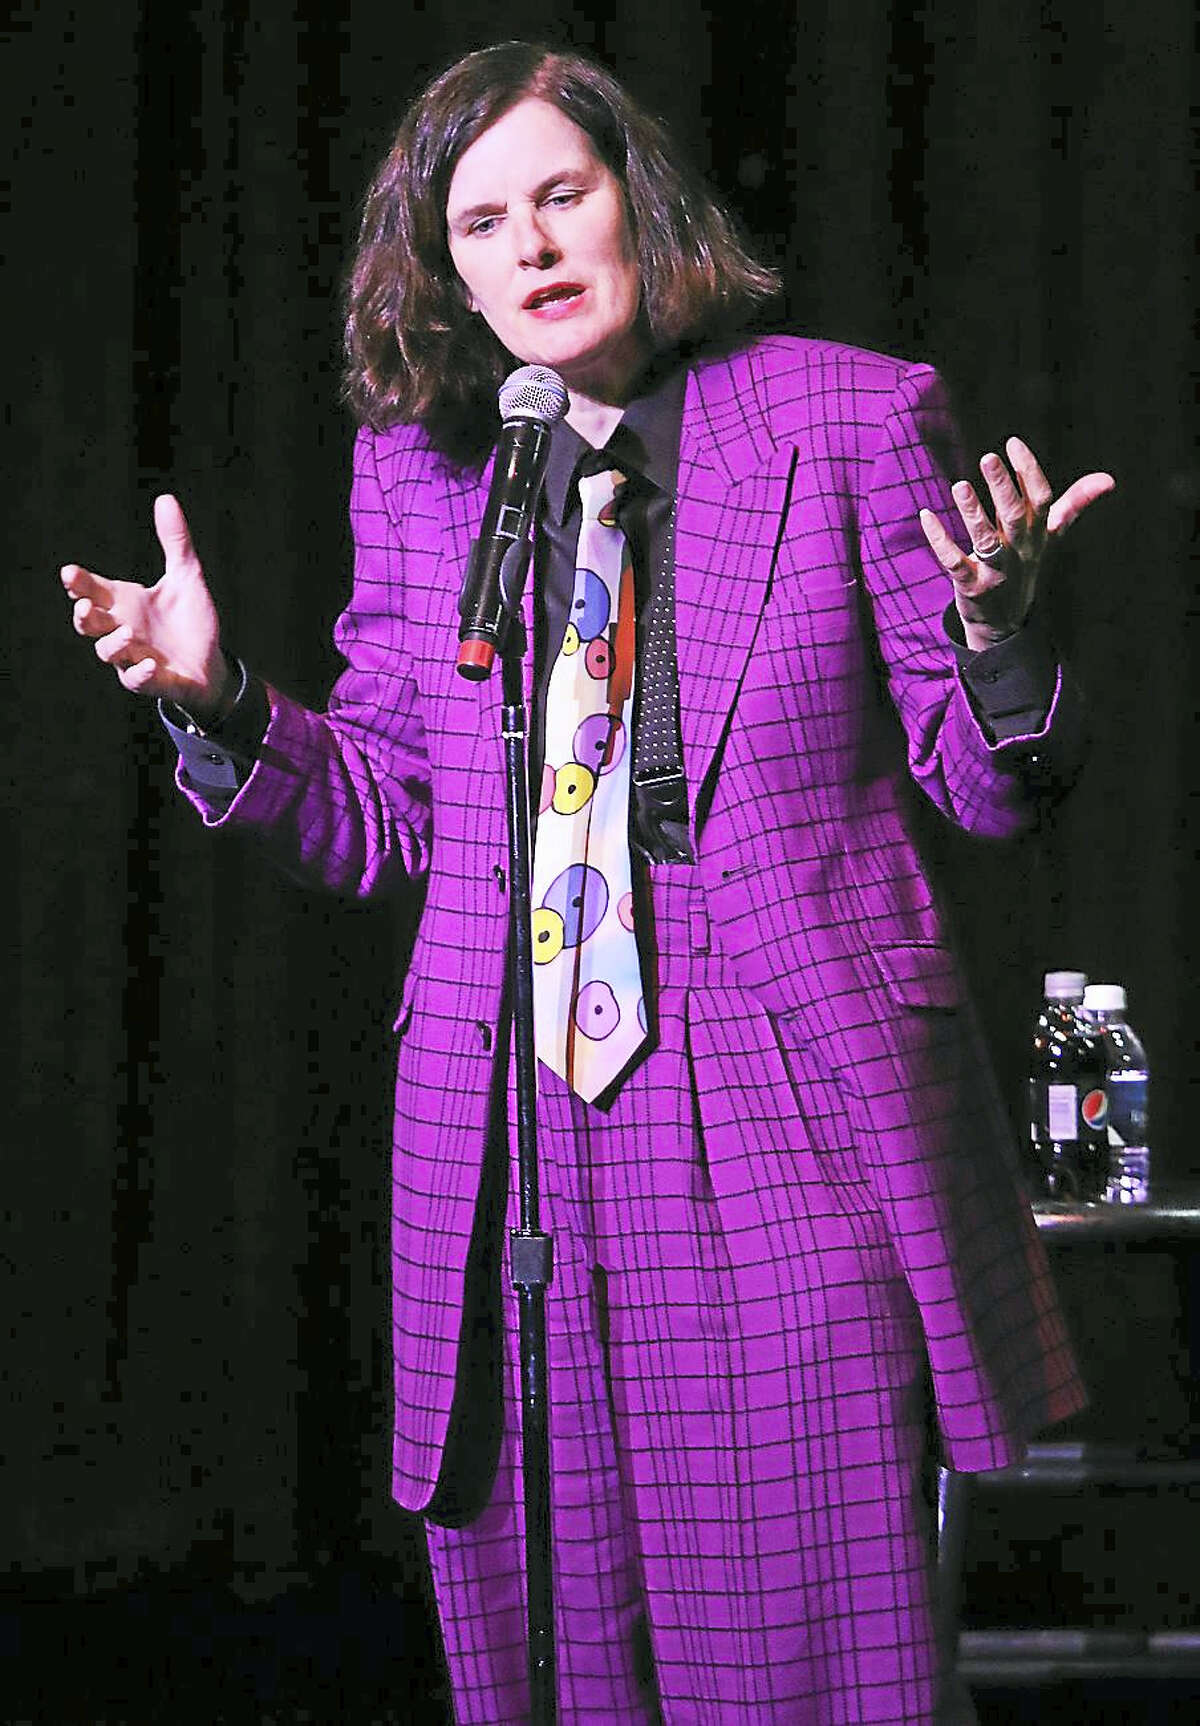 Photo by John AtashianComedian, author, actress, interviewer and commentator, Paula Poundstone performs for her fans at the Foxwoods Resort Casino on Friday, Feb. 19. Her hilarious comedy show involved plenty of crowd interaction and real life humor. The show was a big hit with the capacity crown in attendance inside of the Fox Theater. To learn more about Paula Poundstone, go to www.paulapundstone.com.